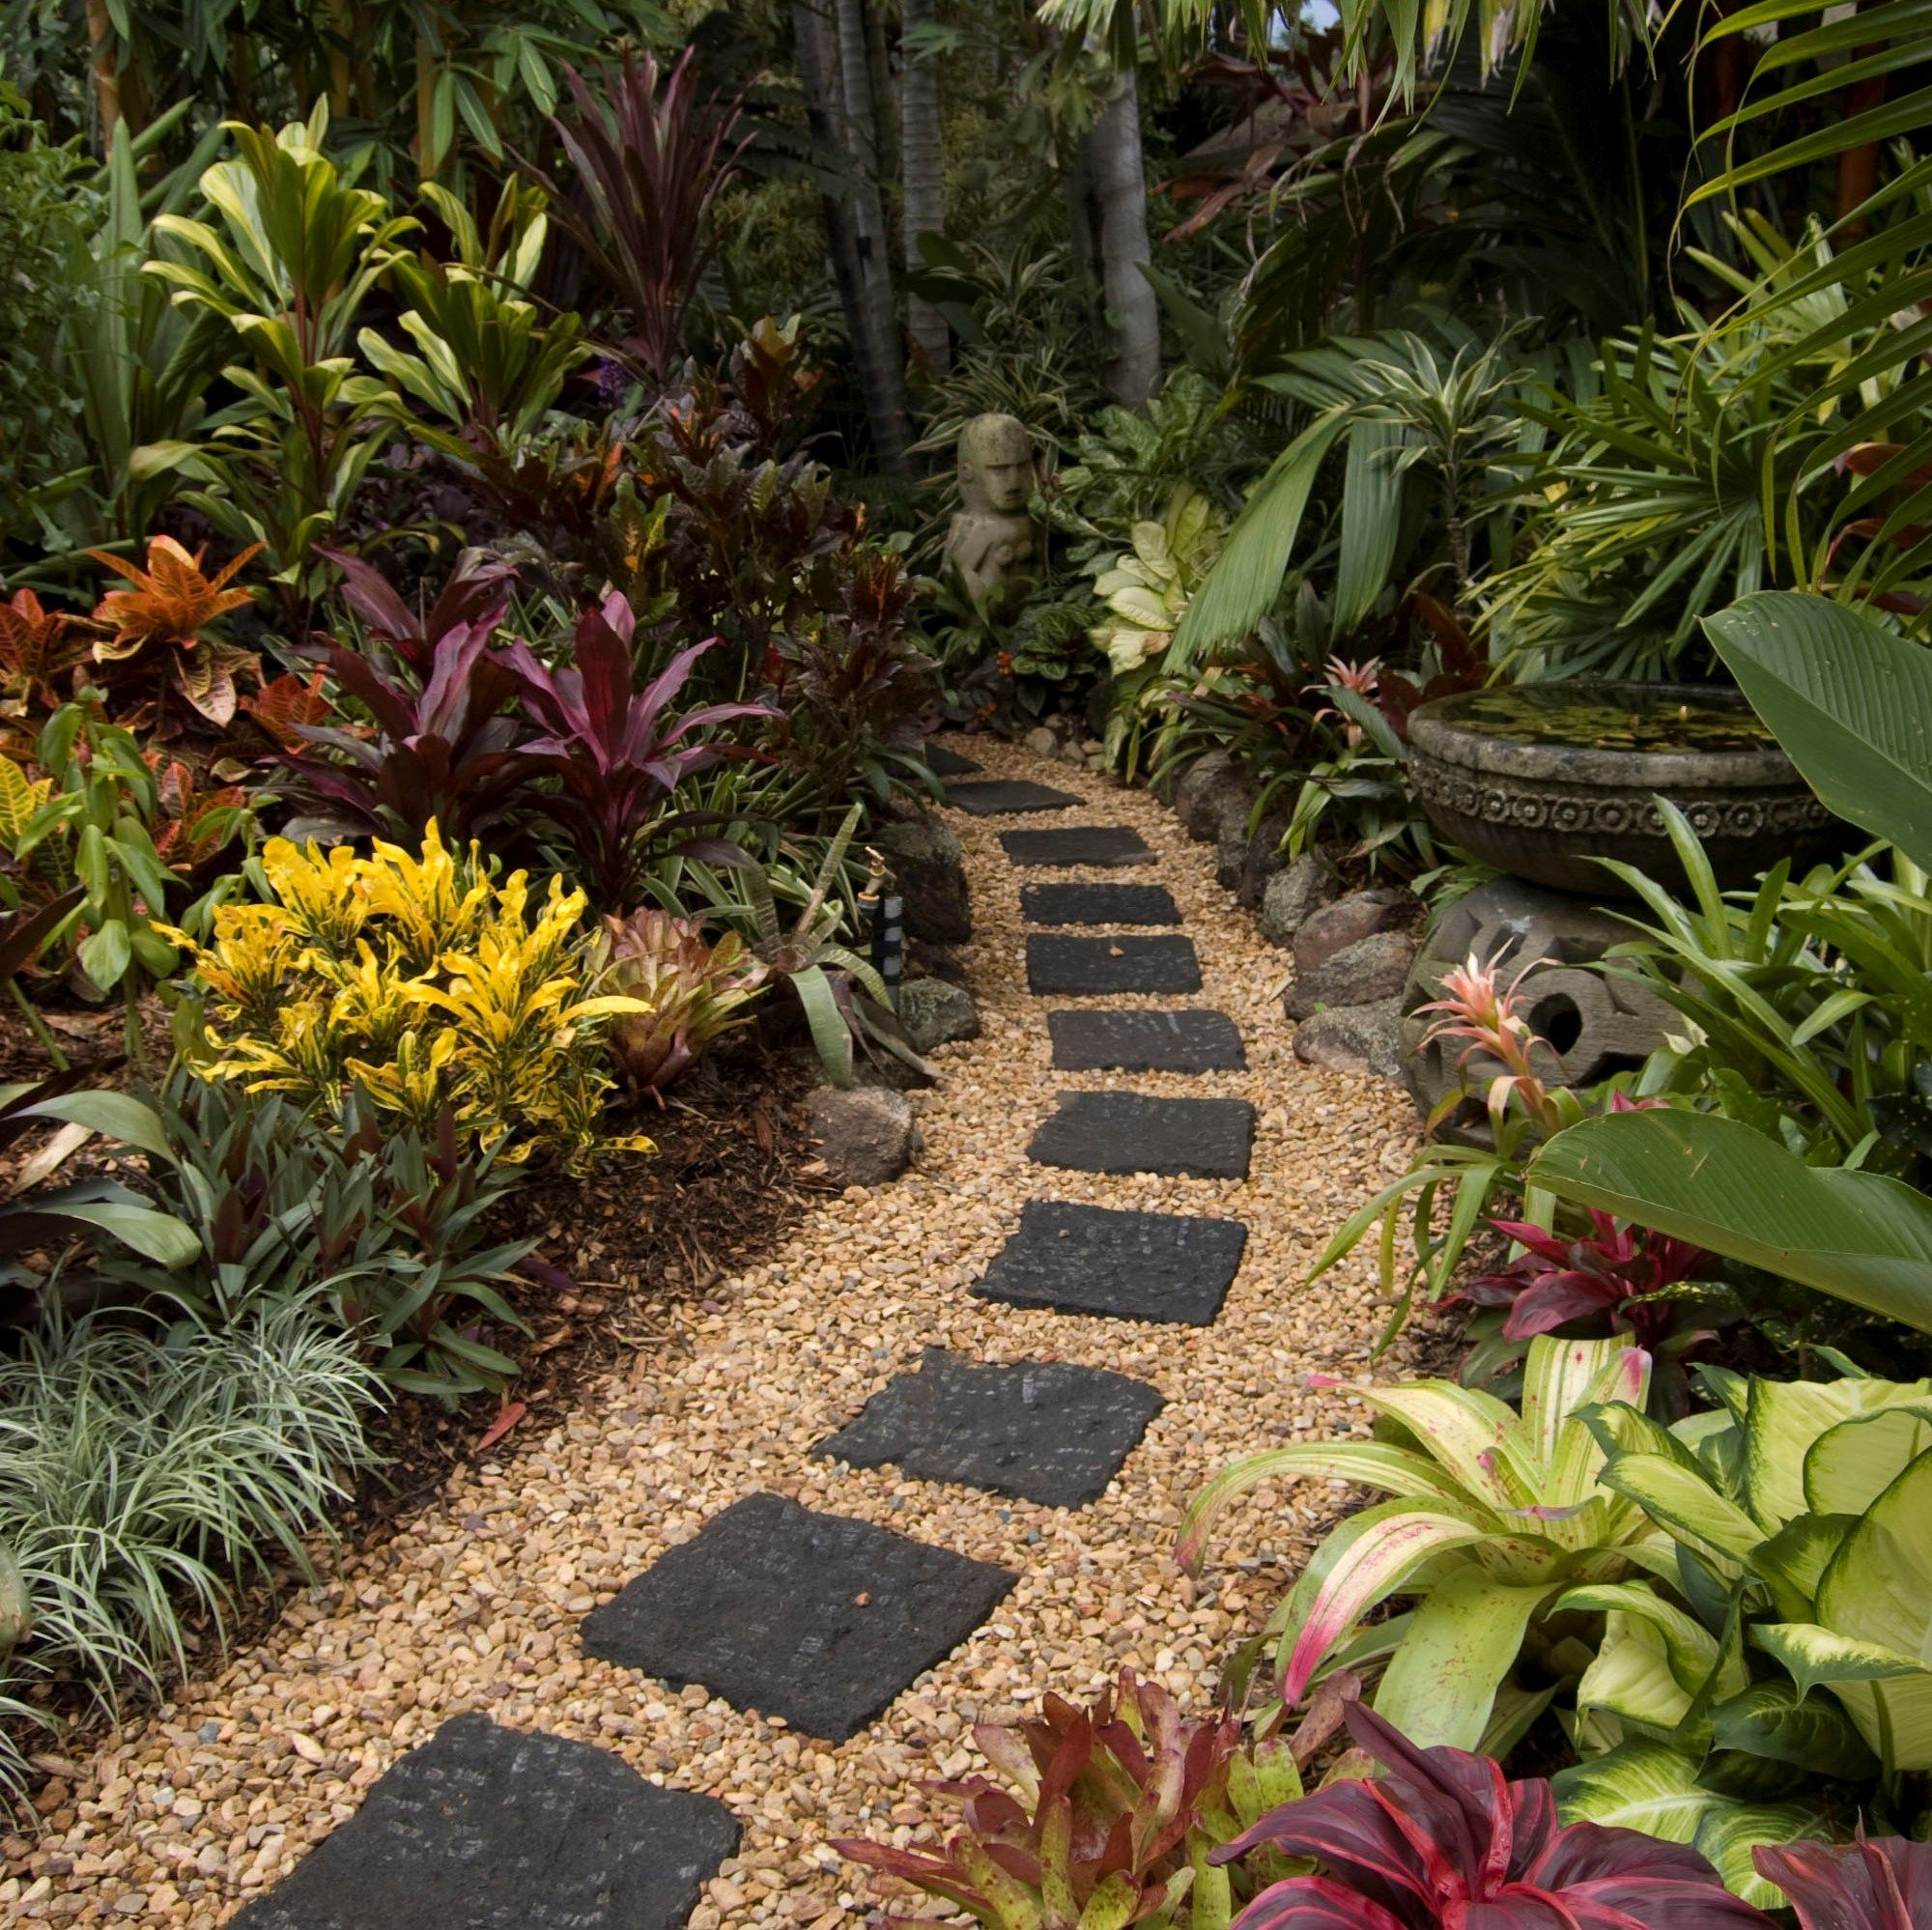 Stone Garden Path Ideas 15 amazing garden path ideas Path Gardening Ideas Paver Path Garden Ideas Inspiration Videos Advicegarden